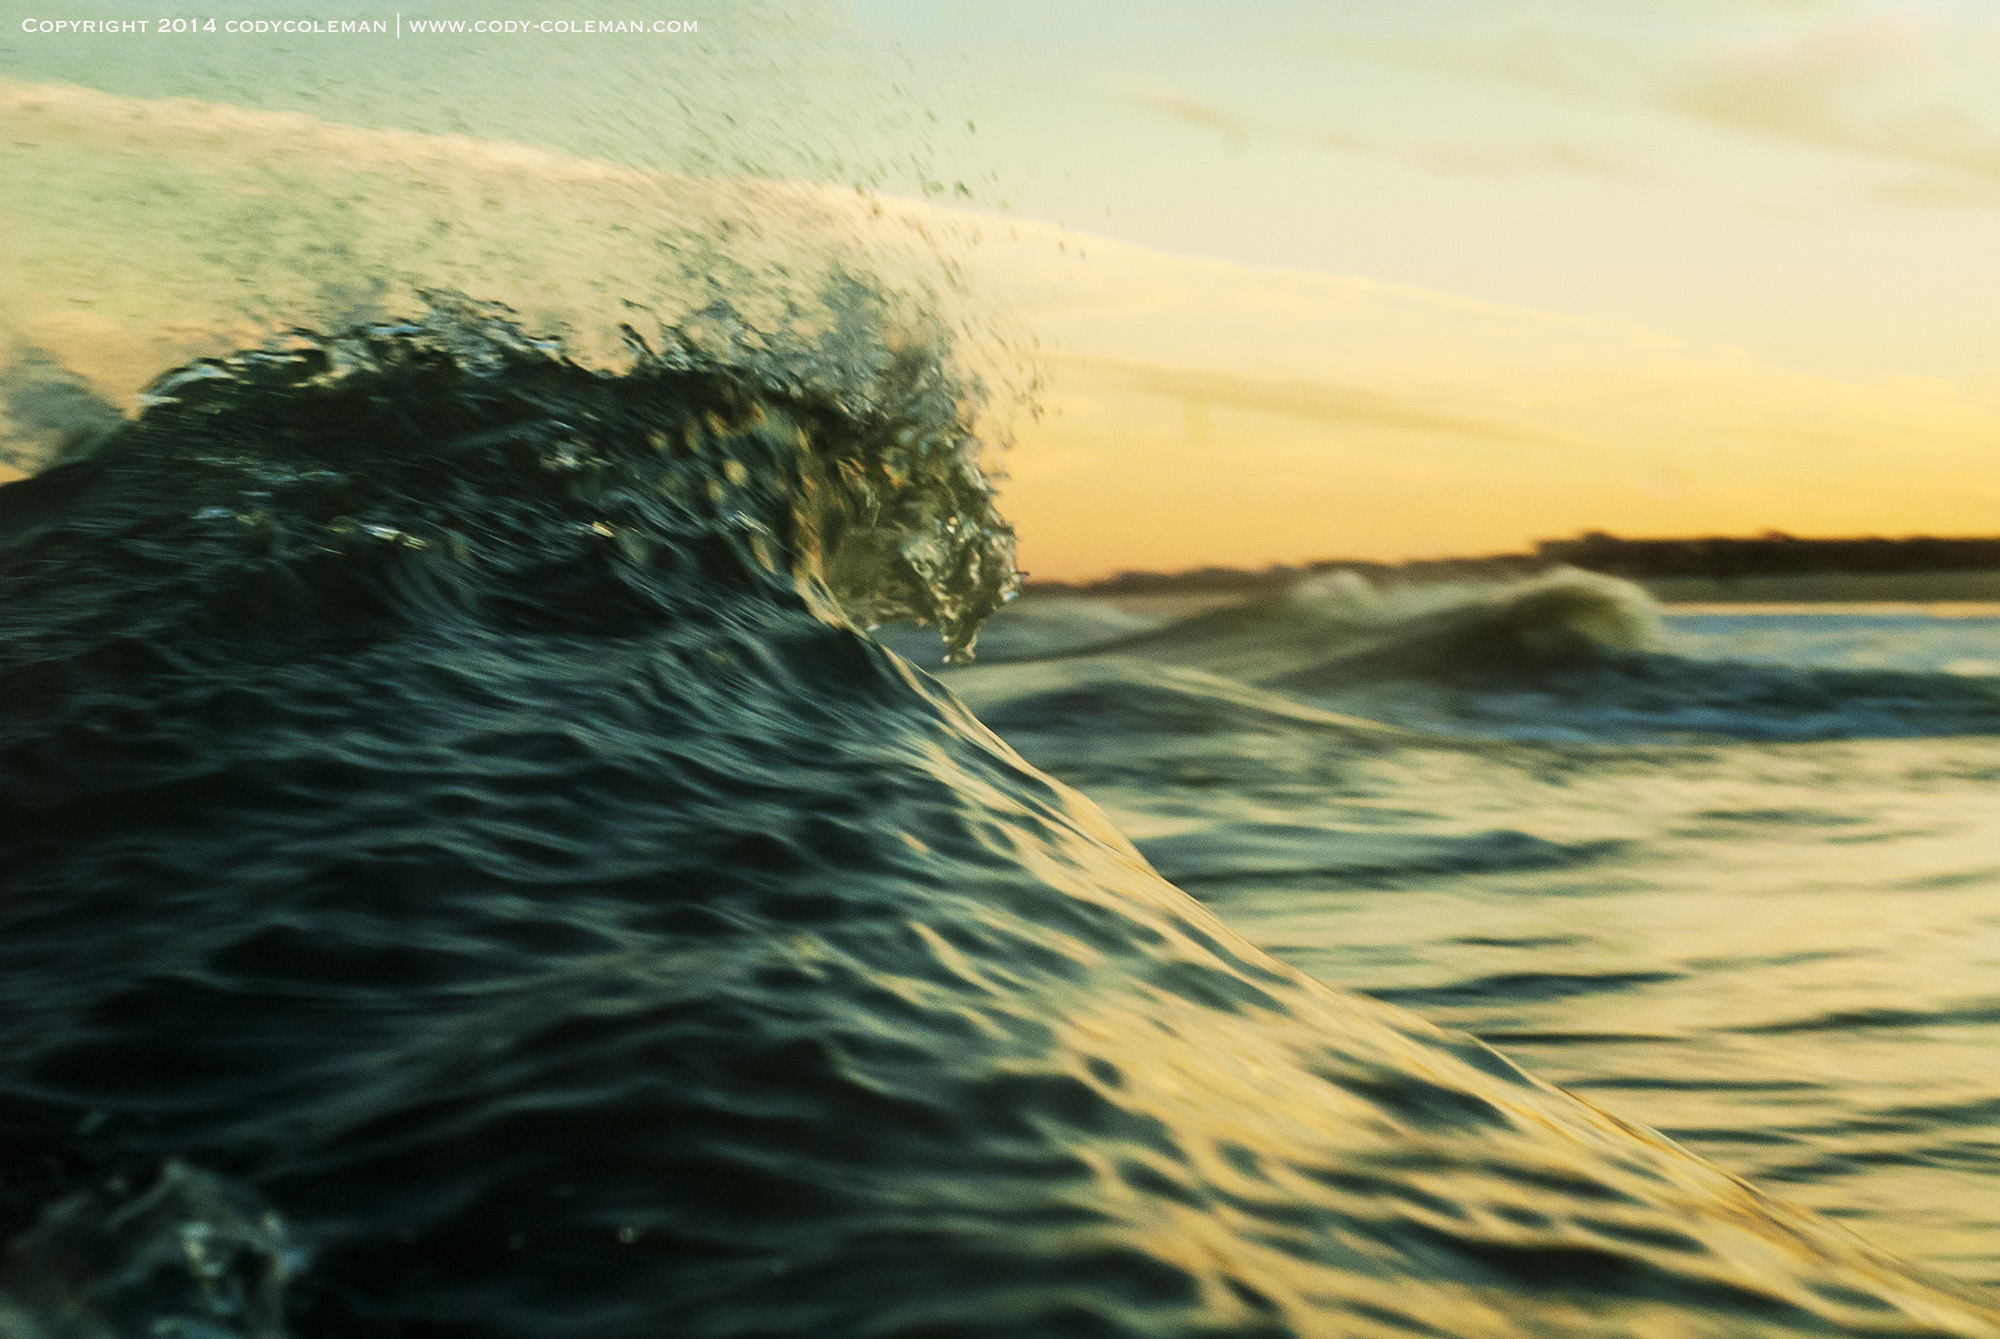 Golden_peaks_waves_Ocean_water